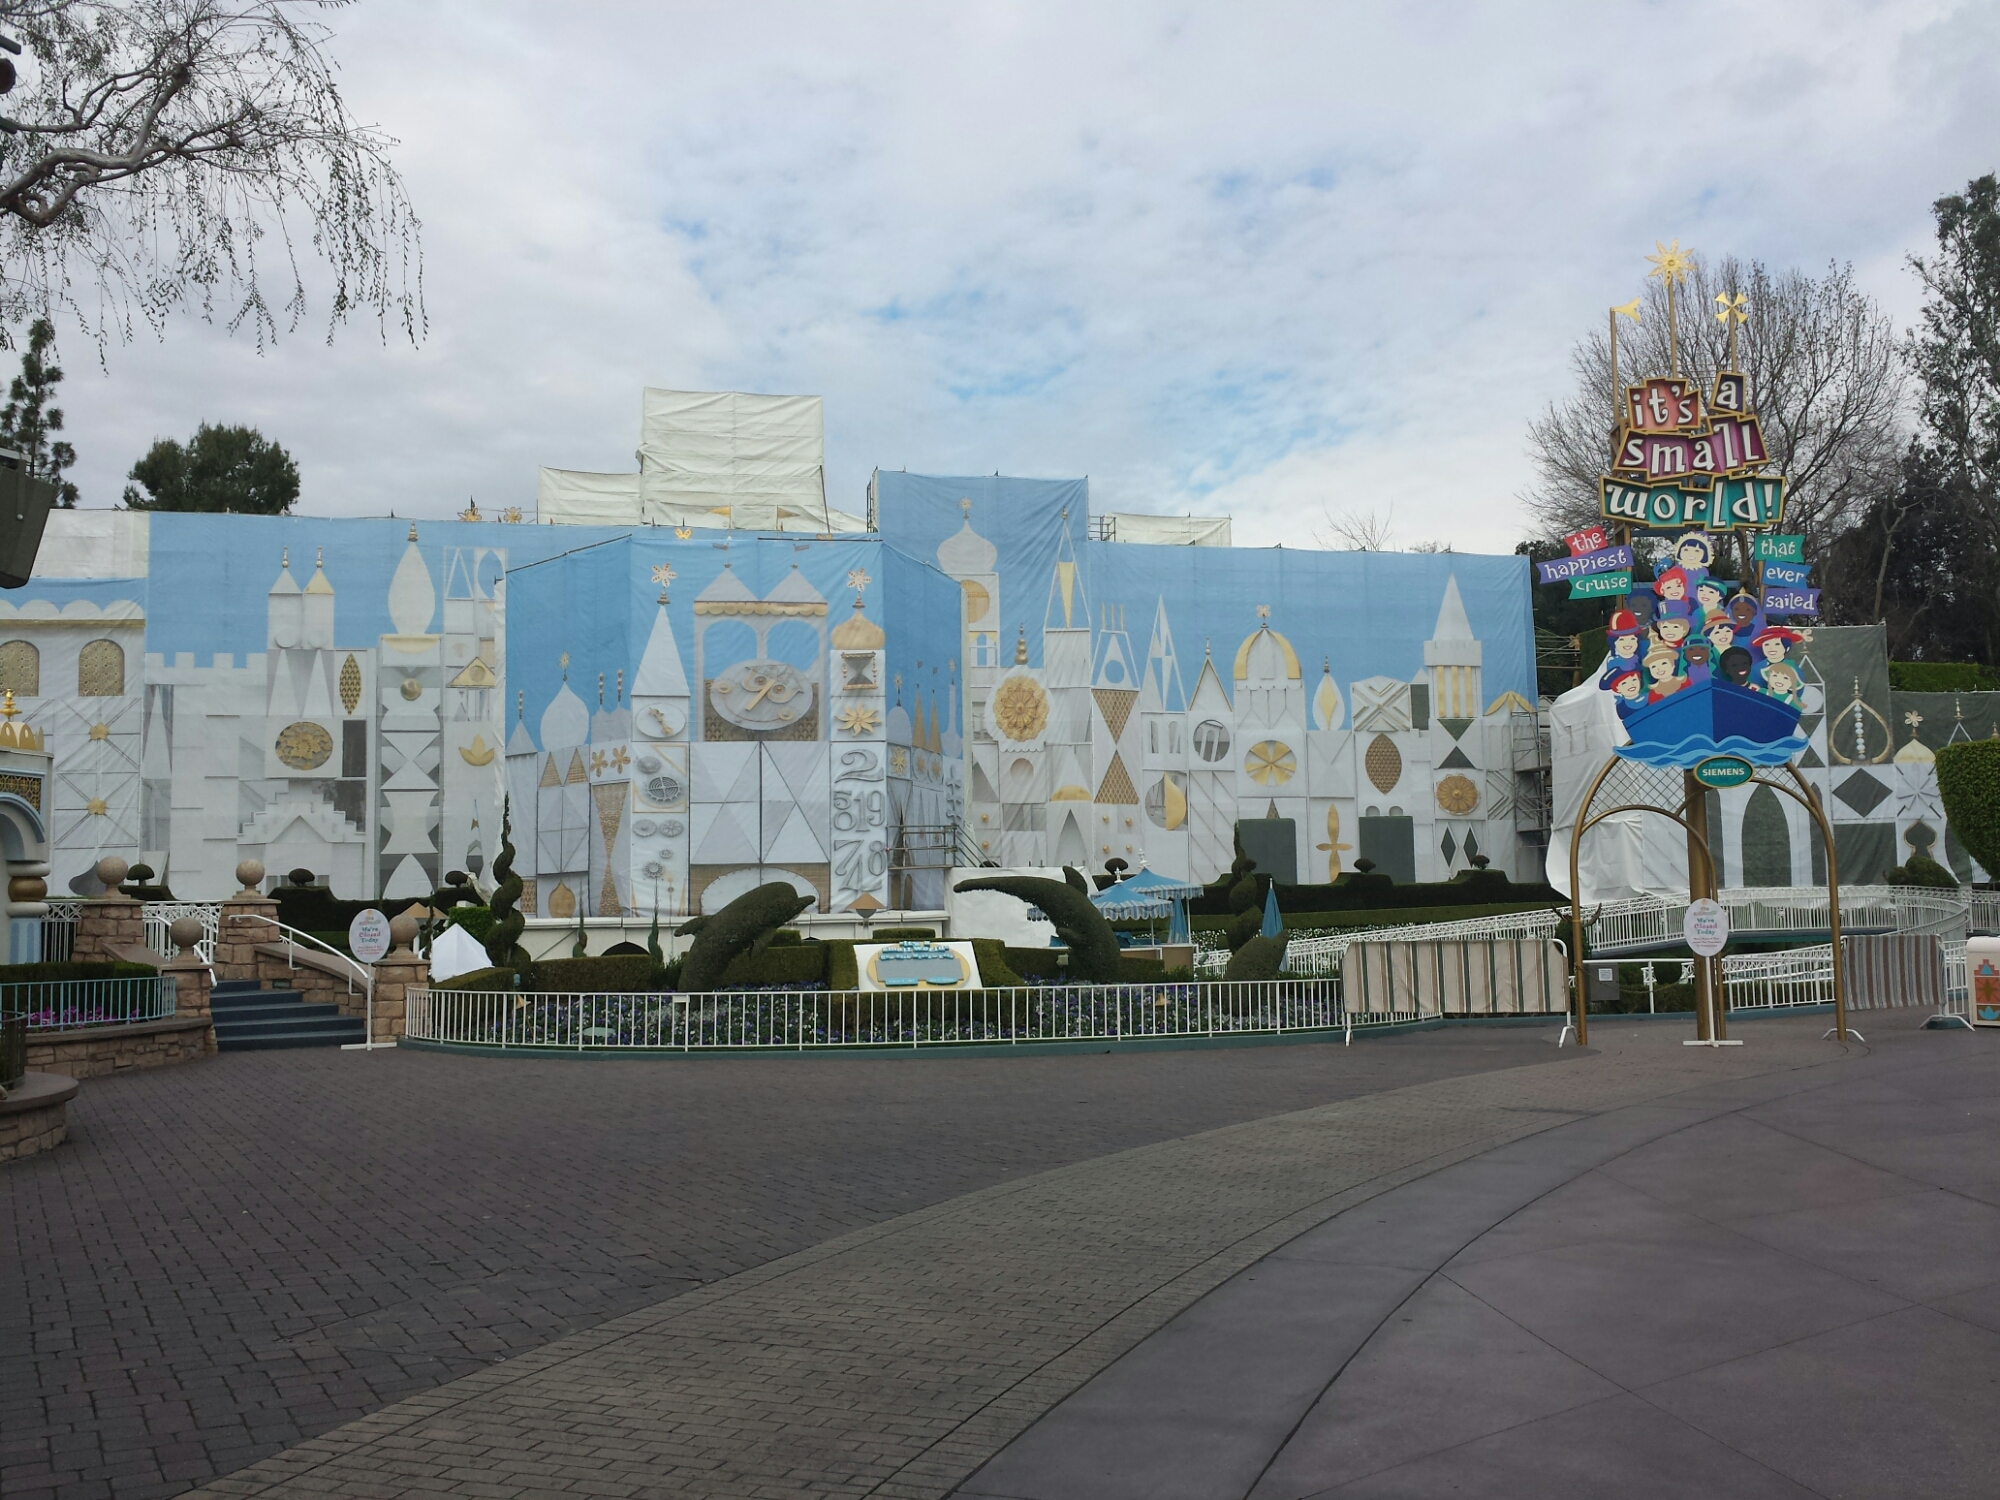 it's a small world is closed for the removal of the holiday overlay and exterior renovations continue #Disneyland